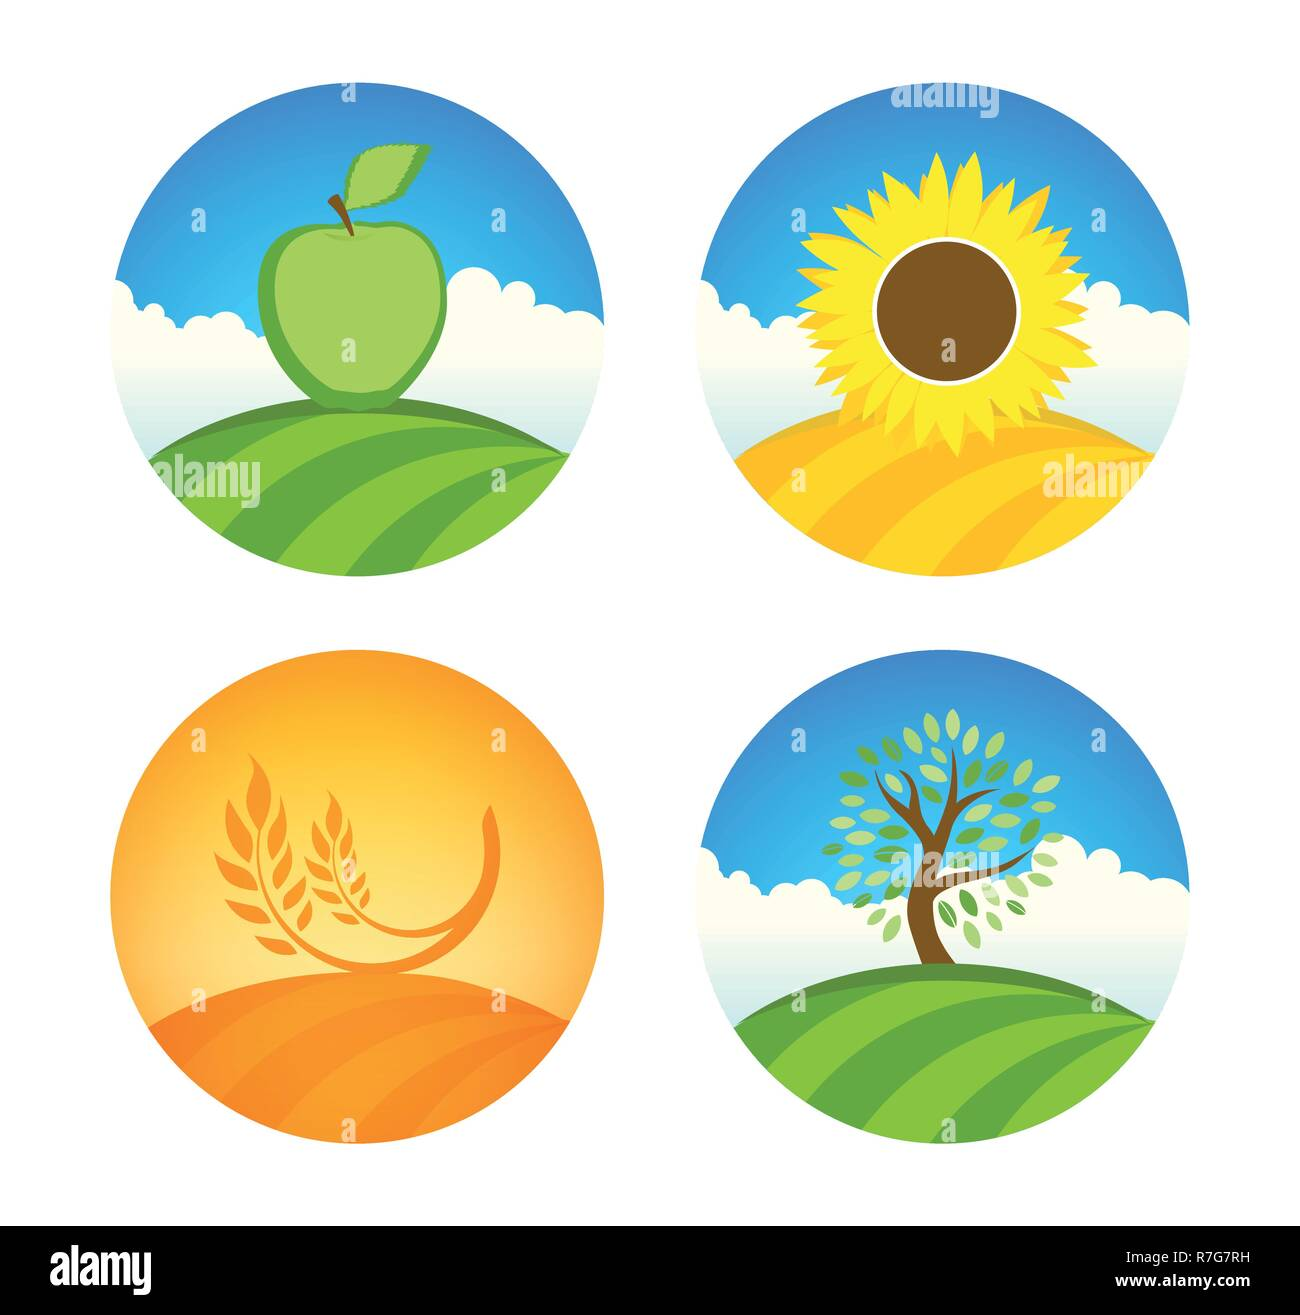 Vector logotypes with apple, sunflower and wheat nature farm harvest on colorful round illustration isolated on white. - Stock Vector